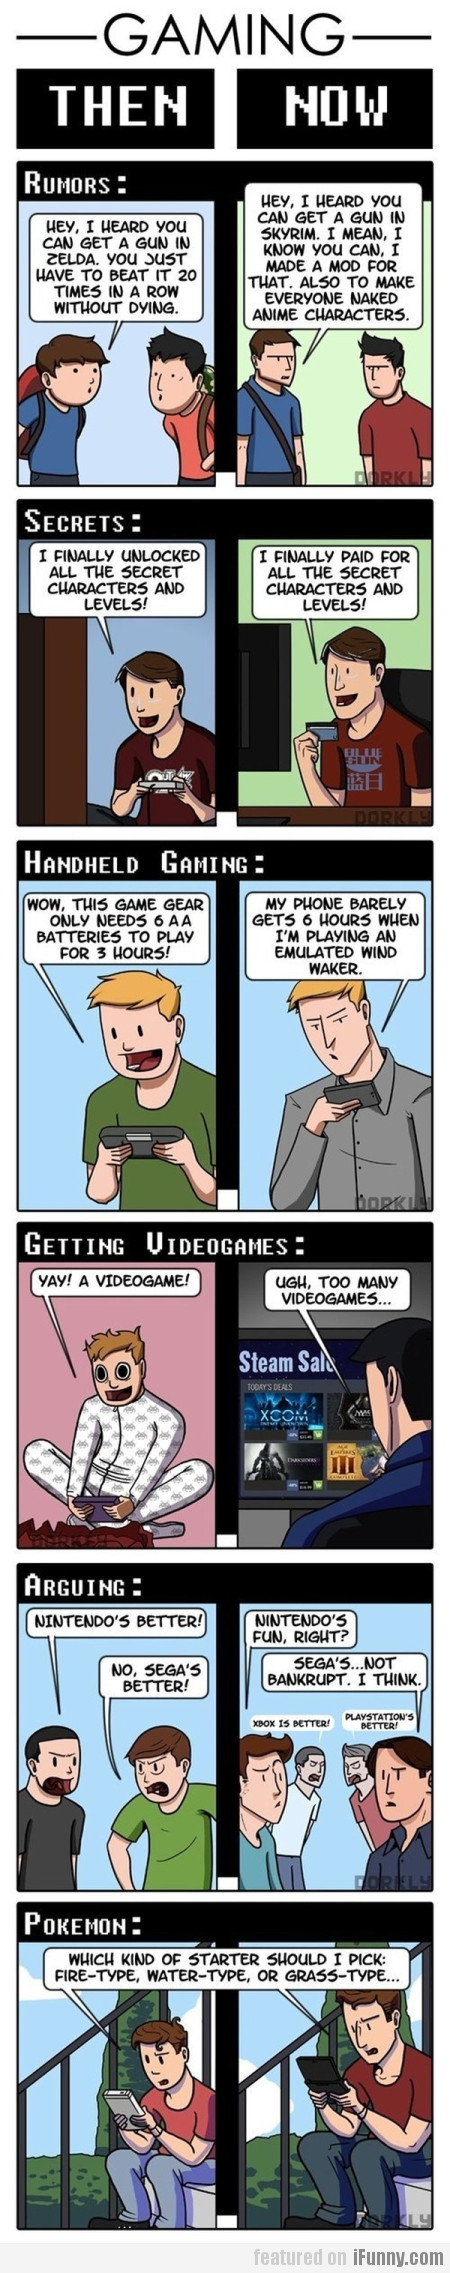 Gaming: Then And Now.